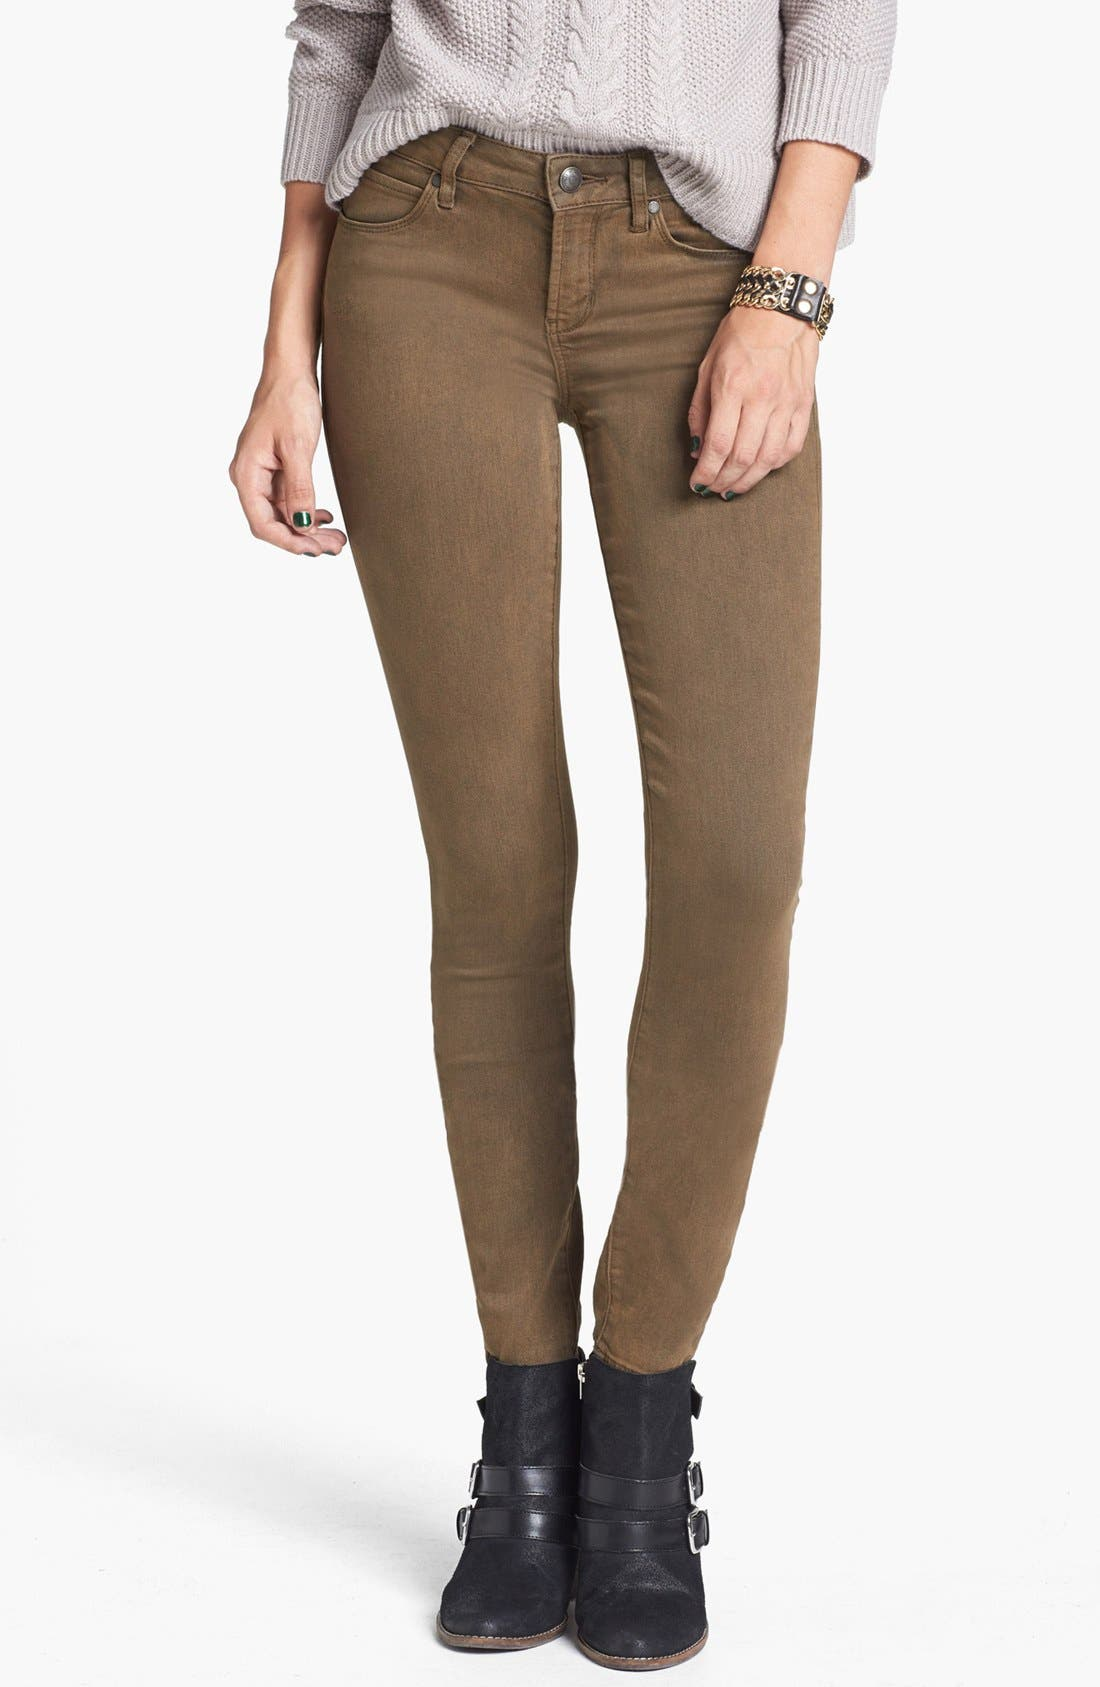 Alternate Image 1 Selected - Articles of Society 'Mya' Overdyed Skinny Jeans (Army) (Juniors)